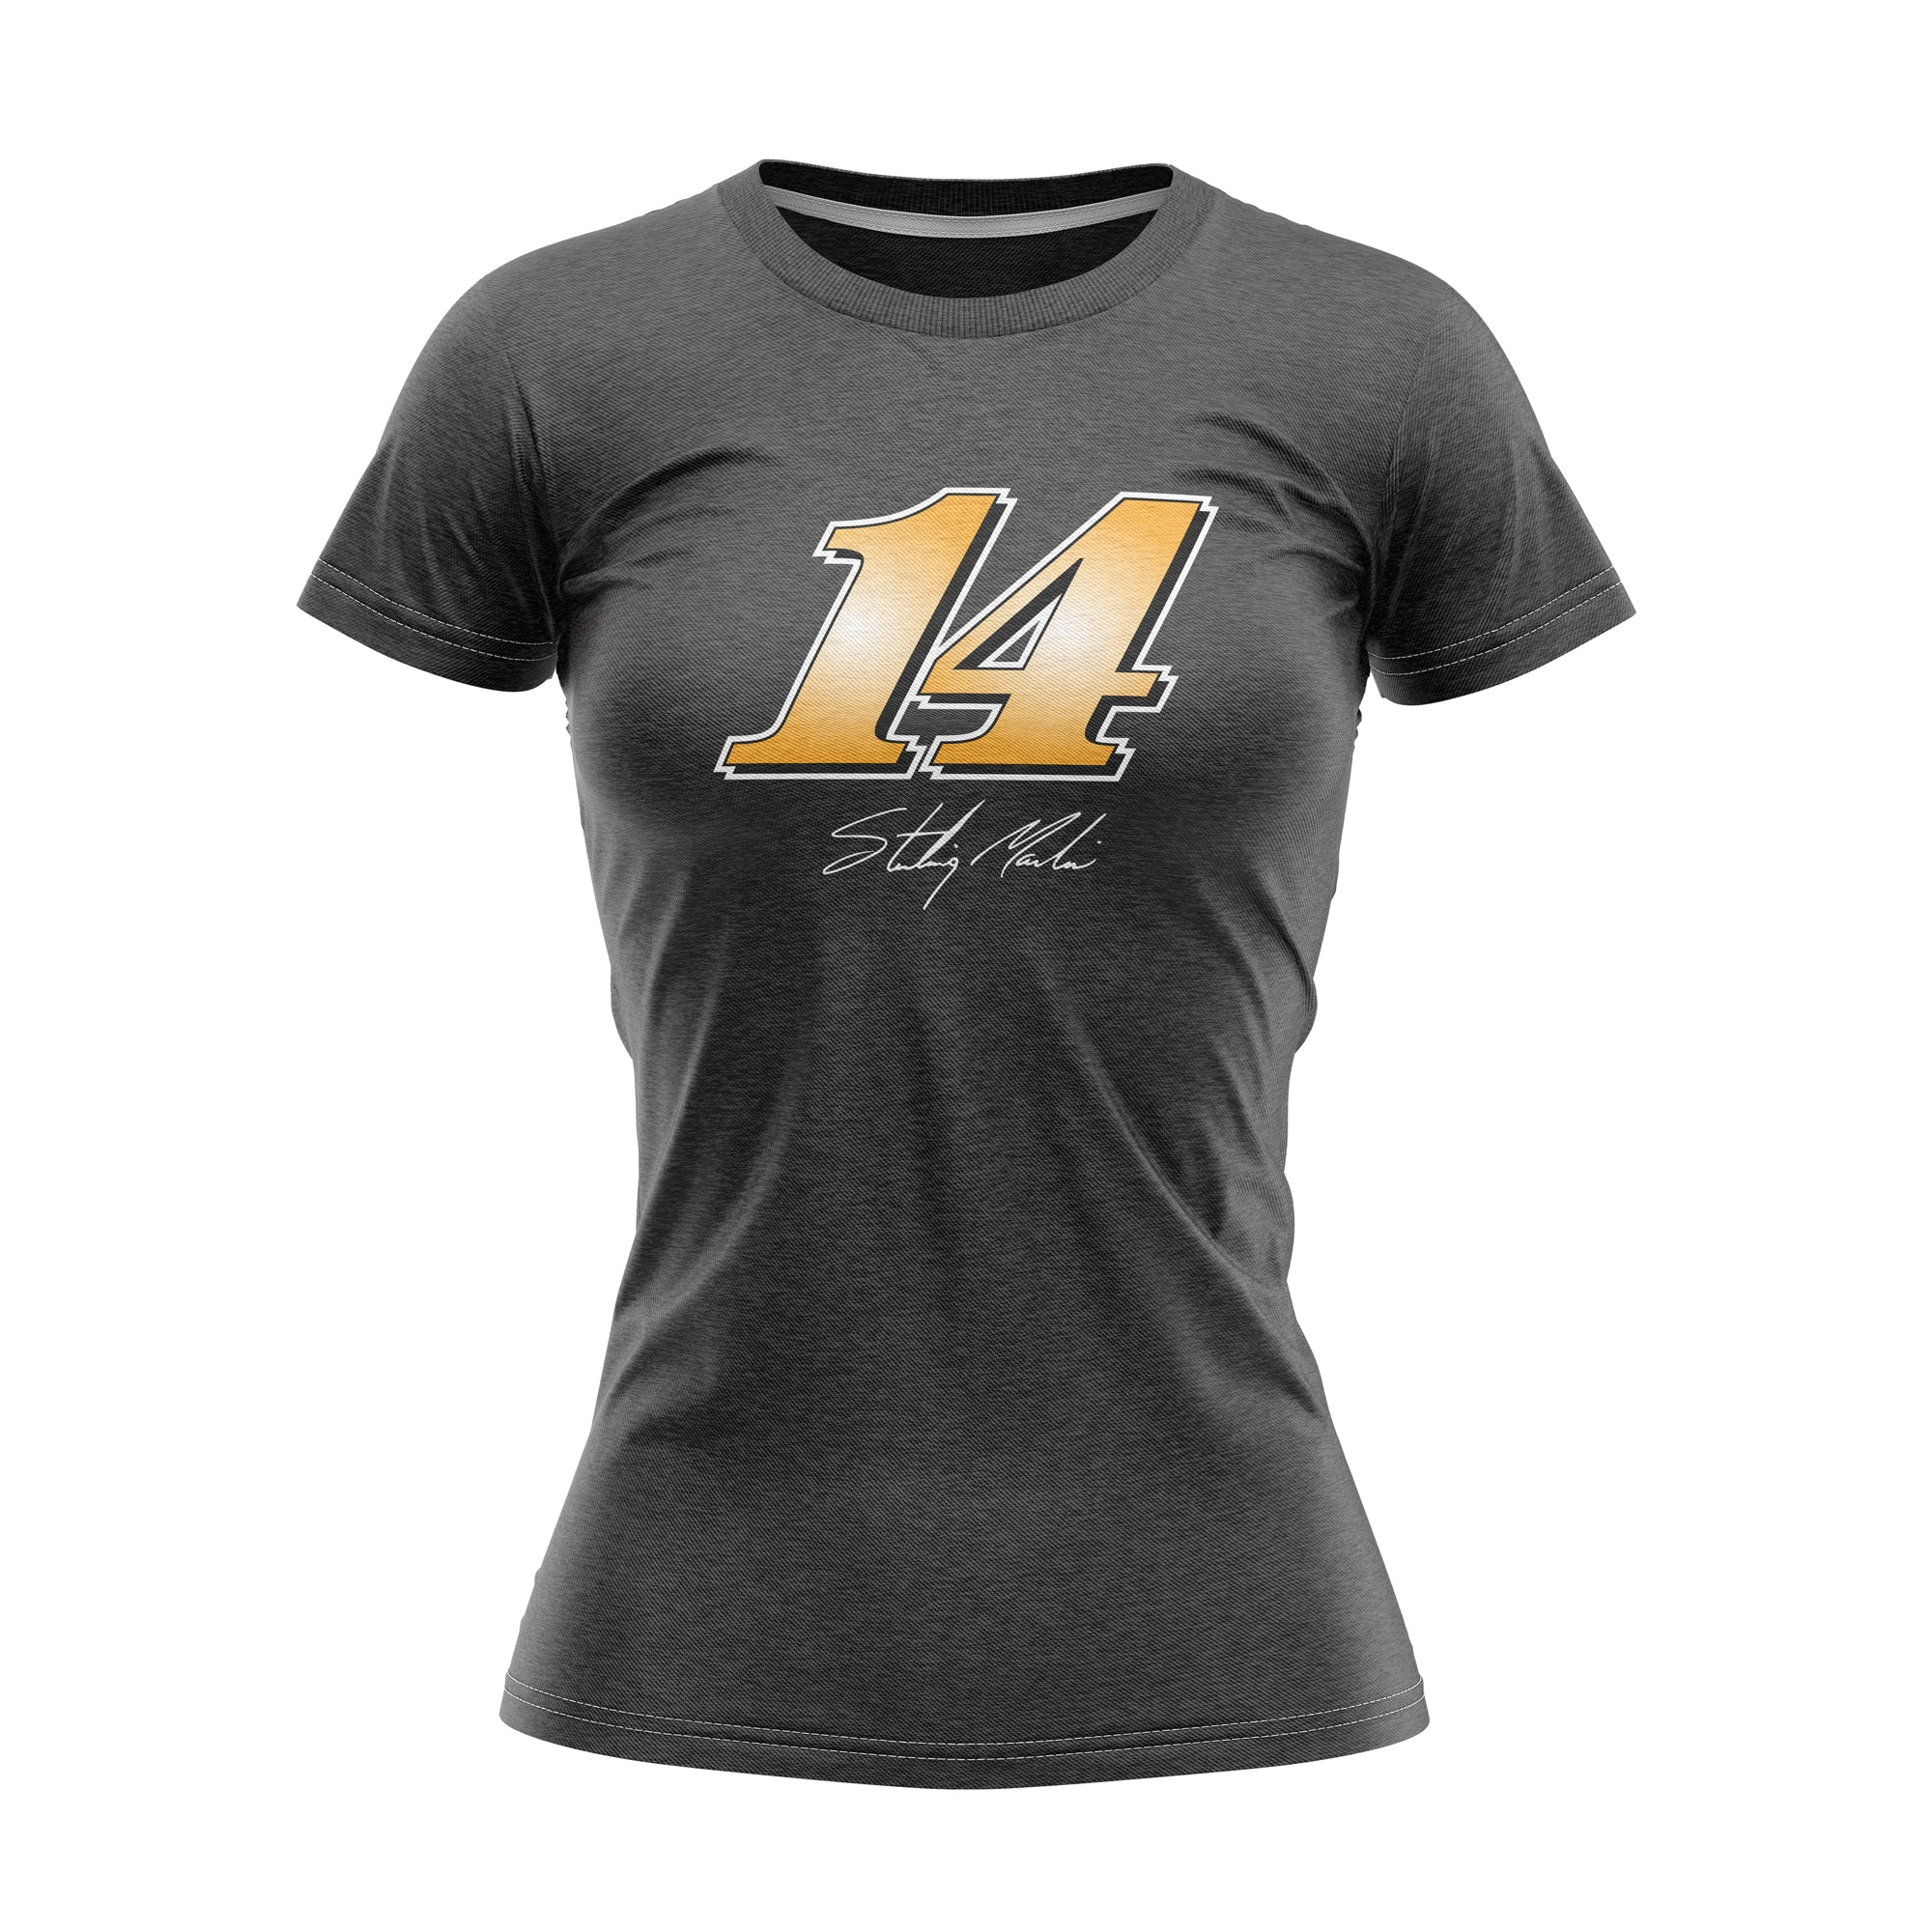 Women's #14 Sterling Marlin Tee